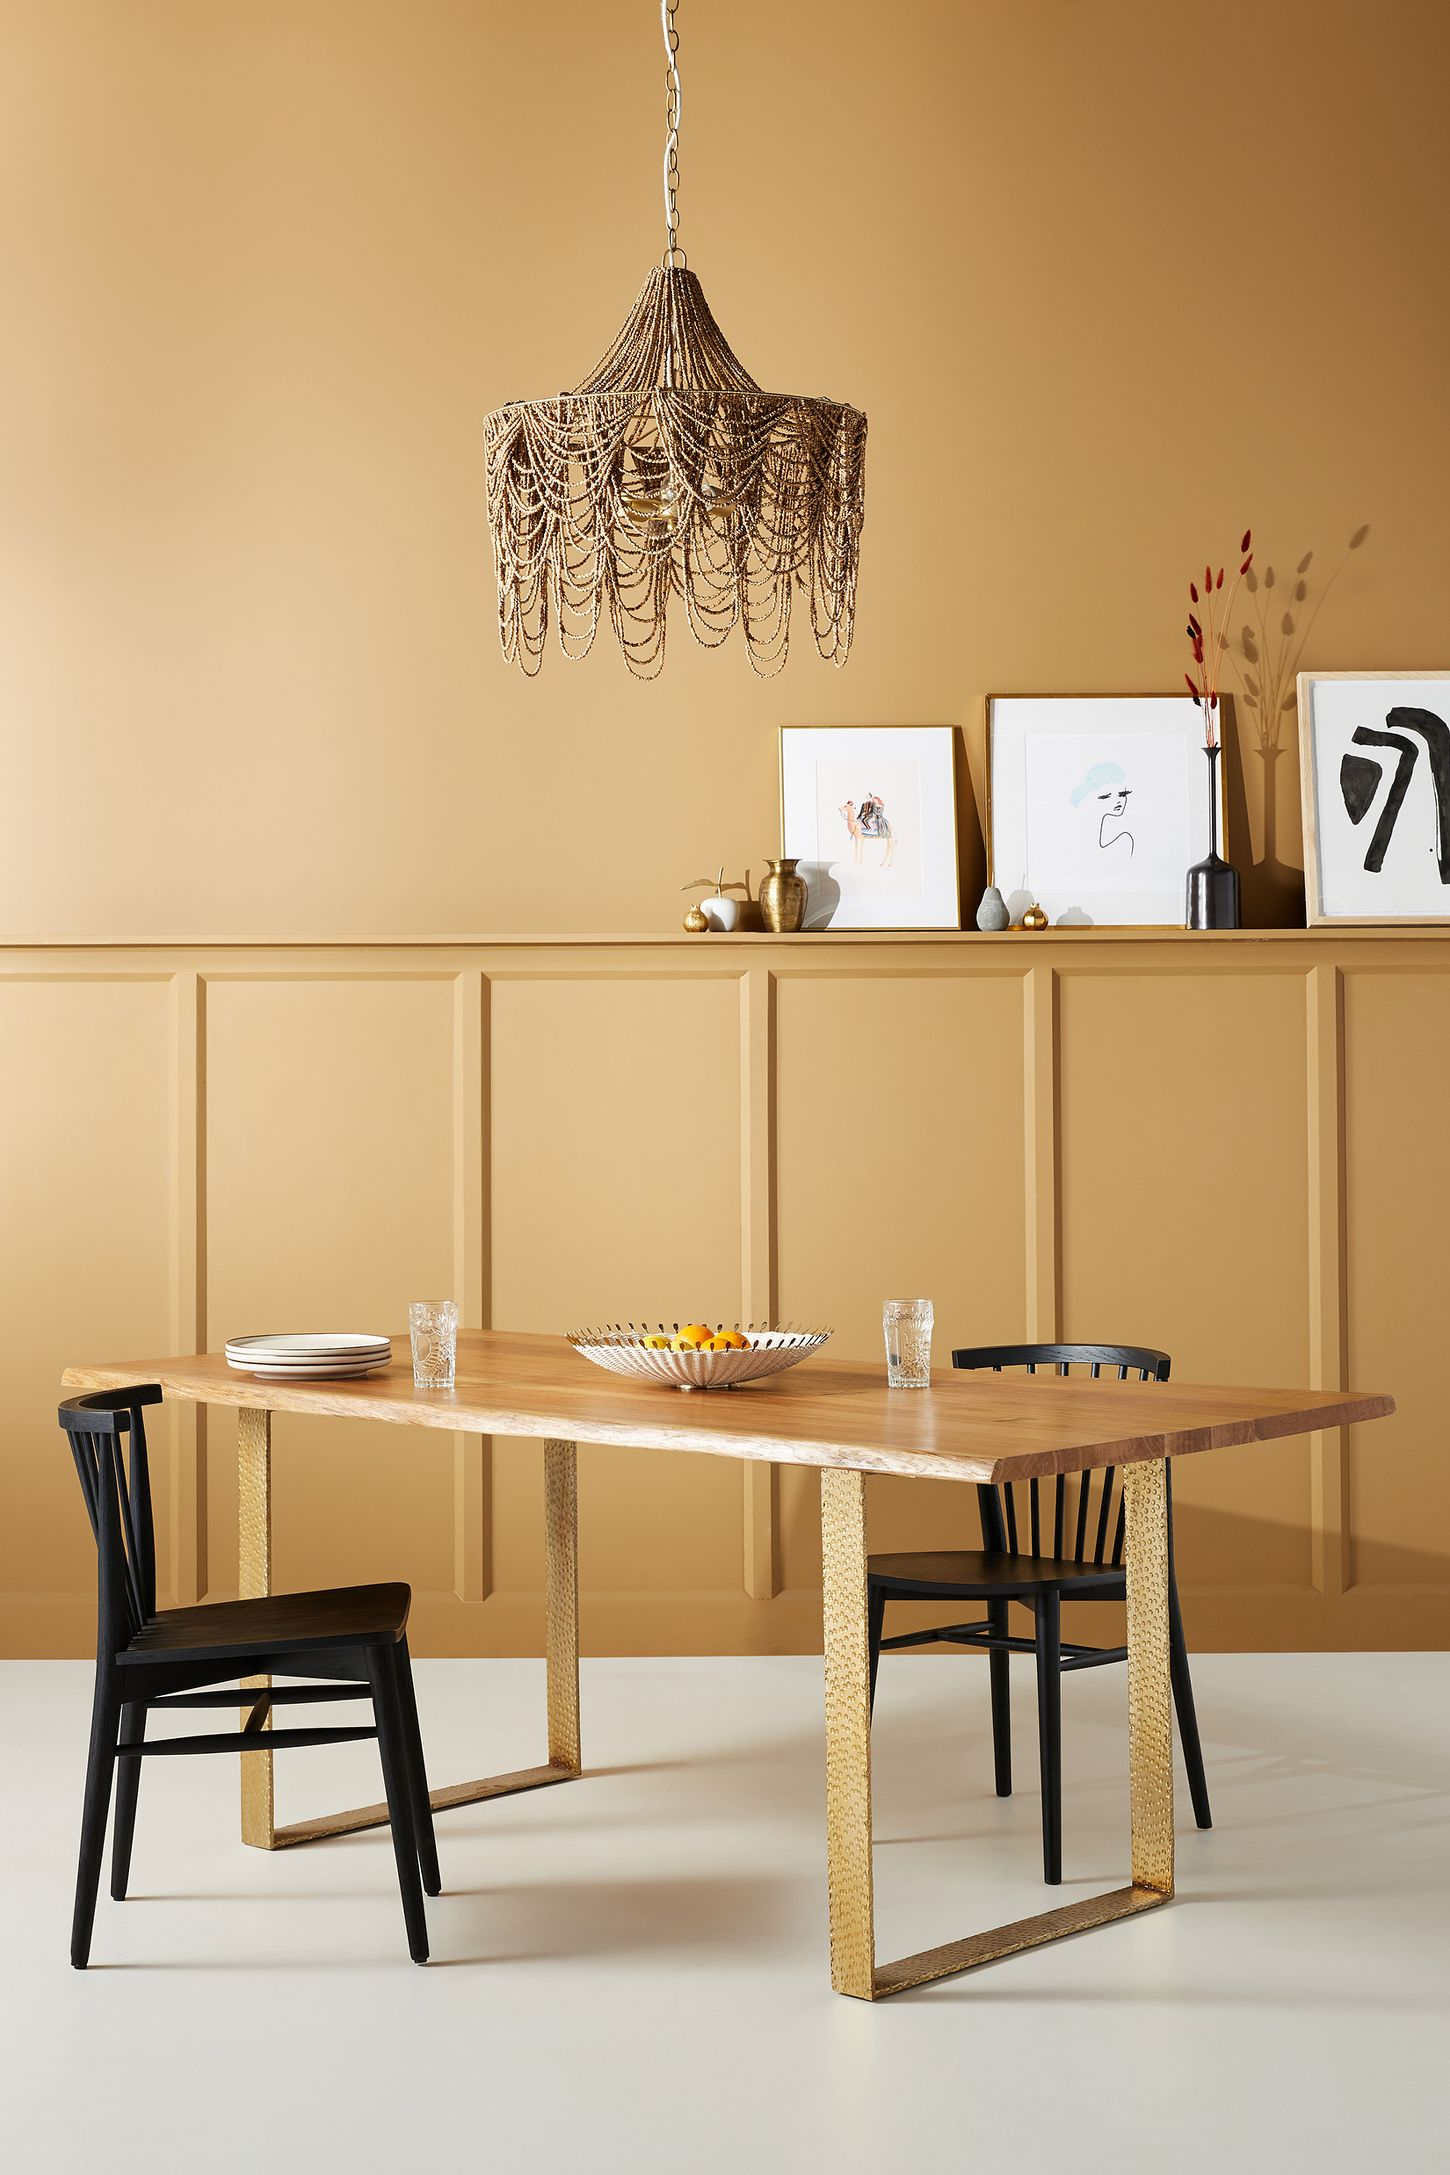 Unique Dining Tables & Kitchen Tables | Anthropologie